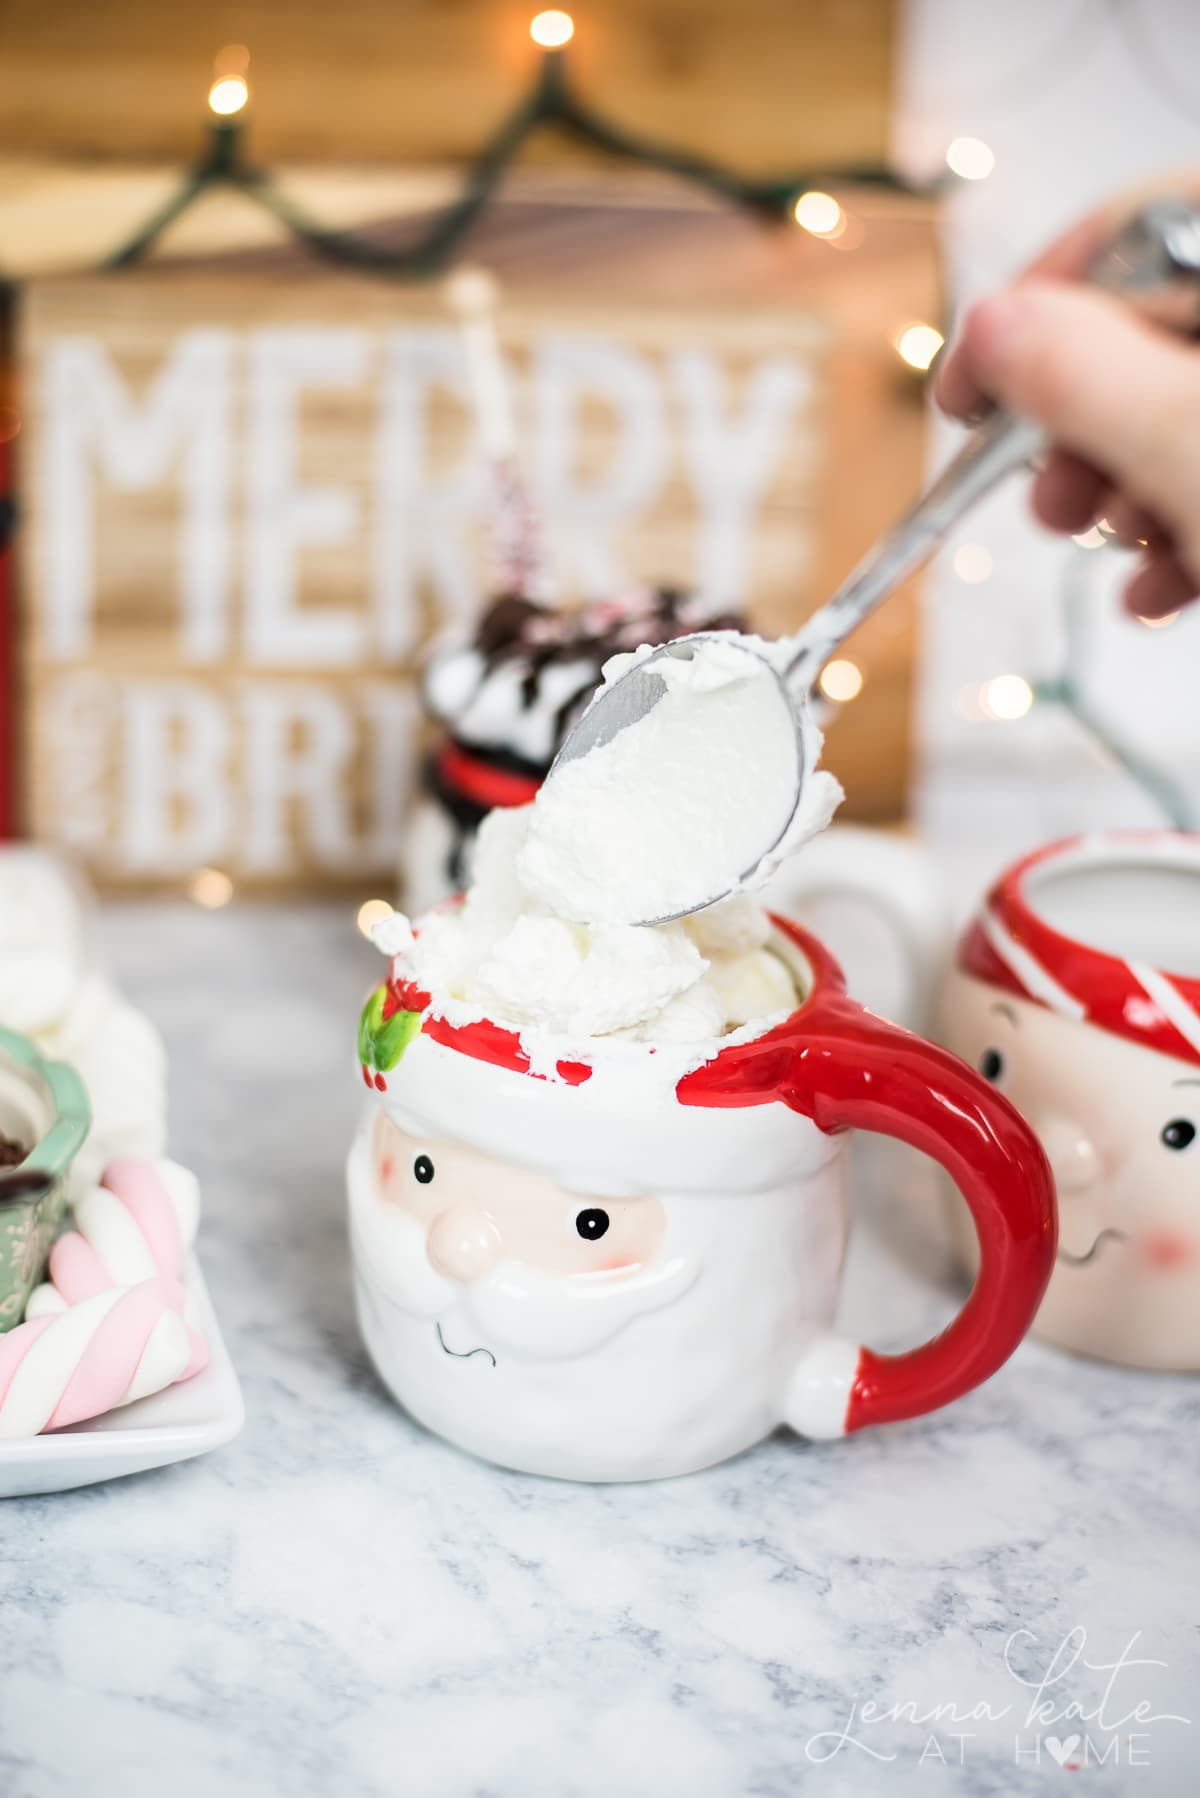 Top your customized cup of delicious hot chocolate with whipped cream